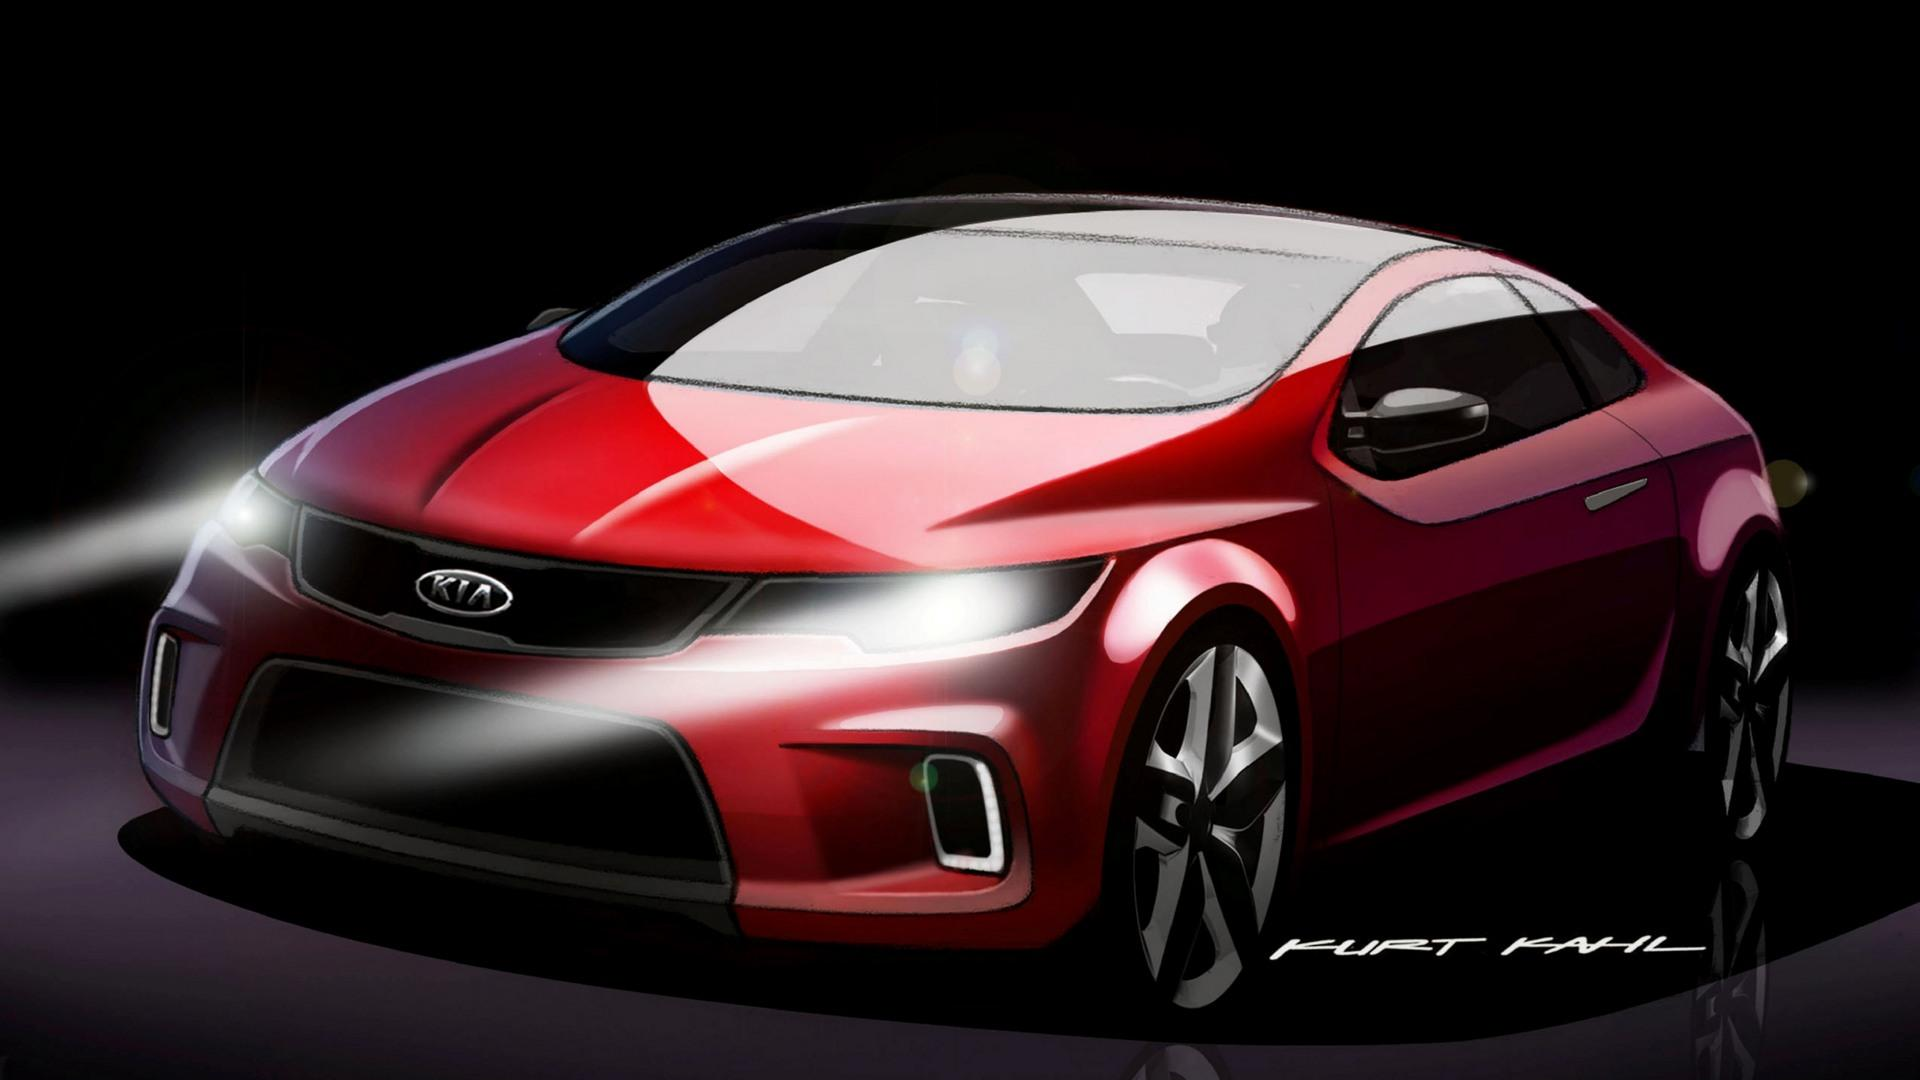 2008 Kia Koup Concept News And Information Research And